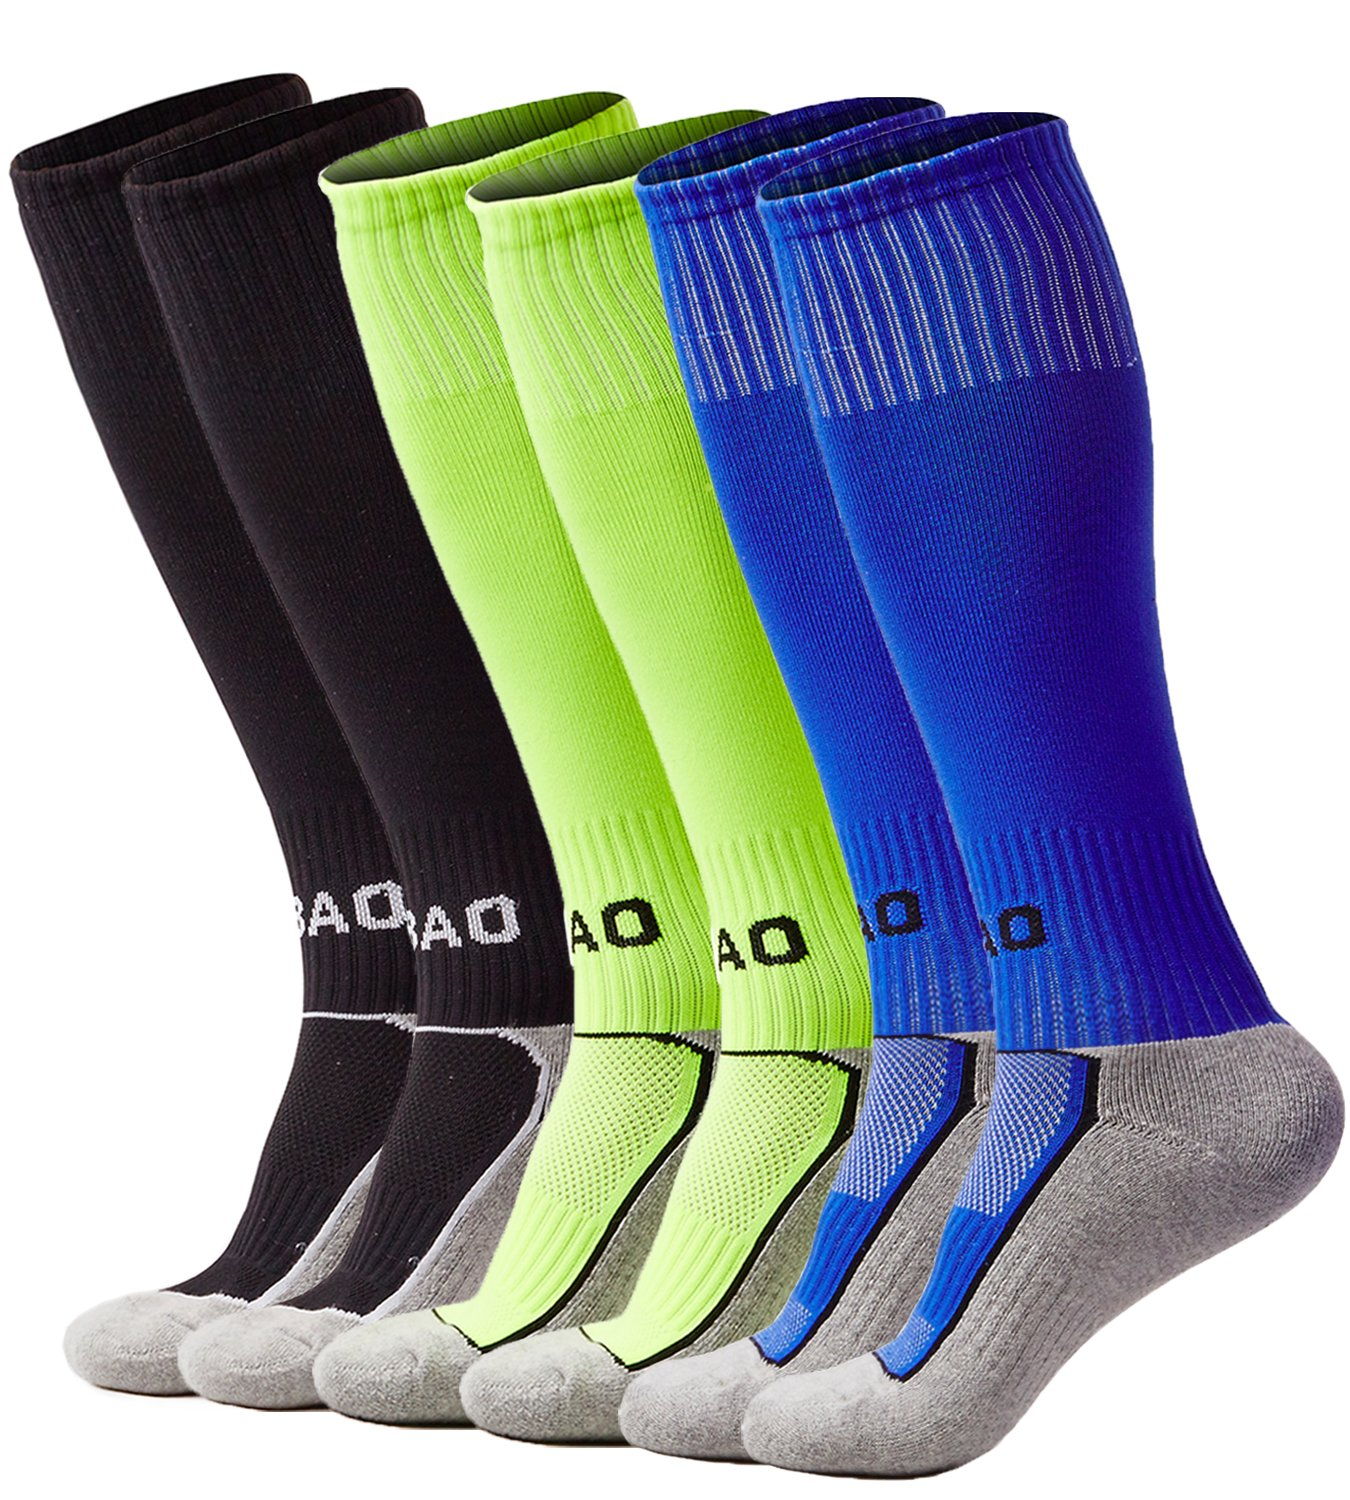 laventoボーイズ/ガールズクッションover the calf Soccer Socks B07BGW2RX2 M (Youth's shoes size 2Y-6)|3 Pack-Black/Neon green/Blue 3 Pack-Black/Neon green/Blue M (Youth's shoes size 2Y-6)